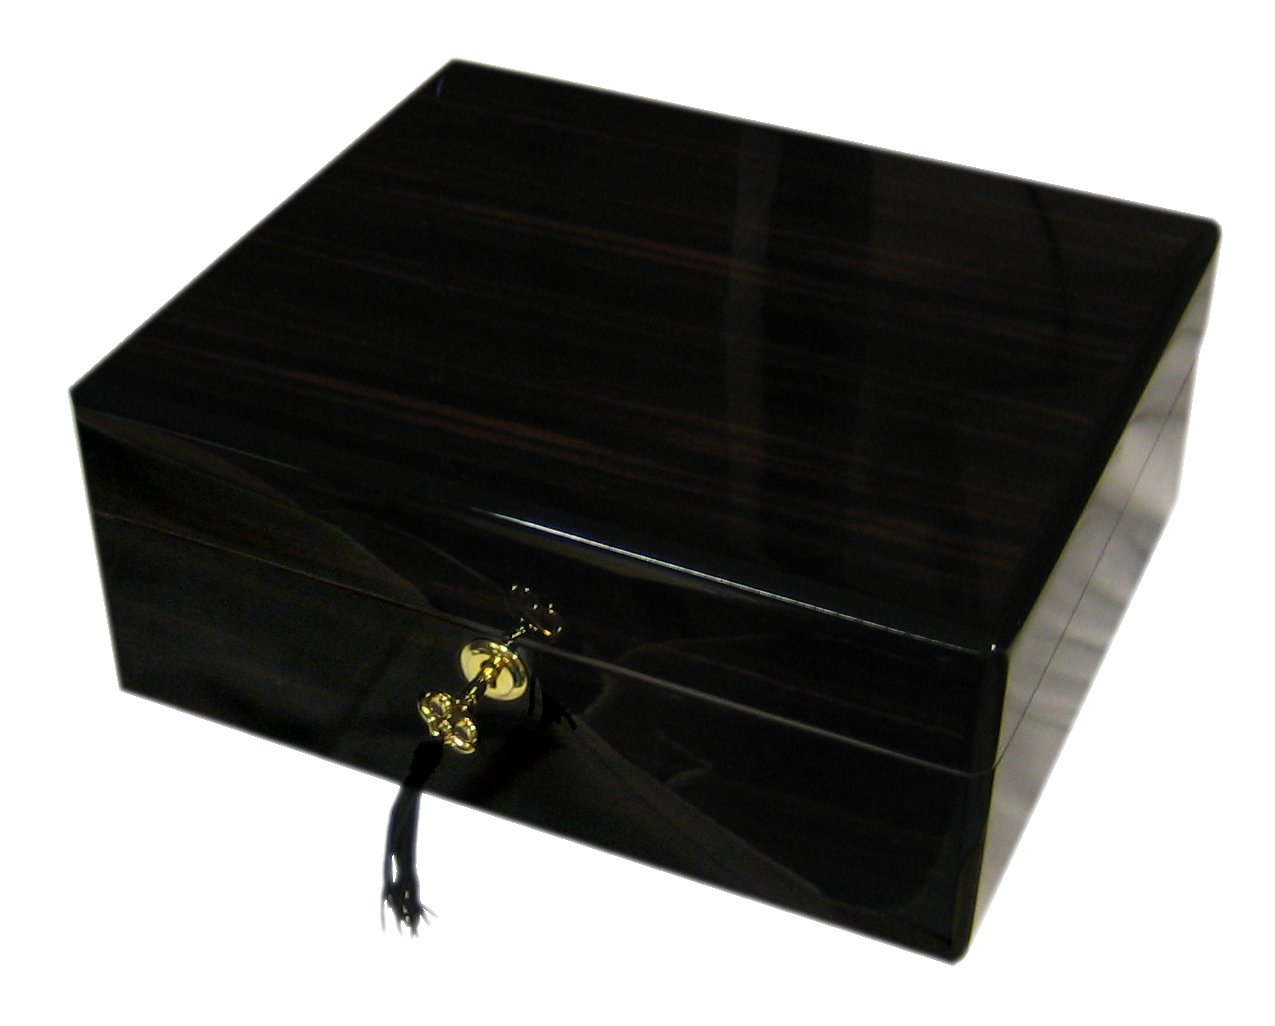 Humipouros Humidor Cebrano 8632 mit Befeuchter (50-75 Cig.)